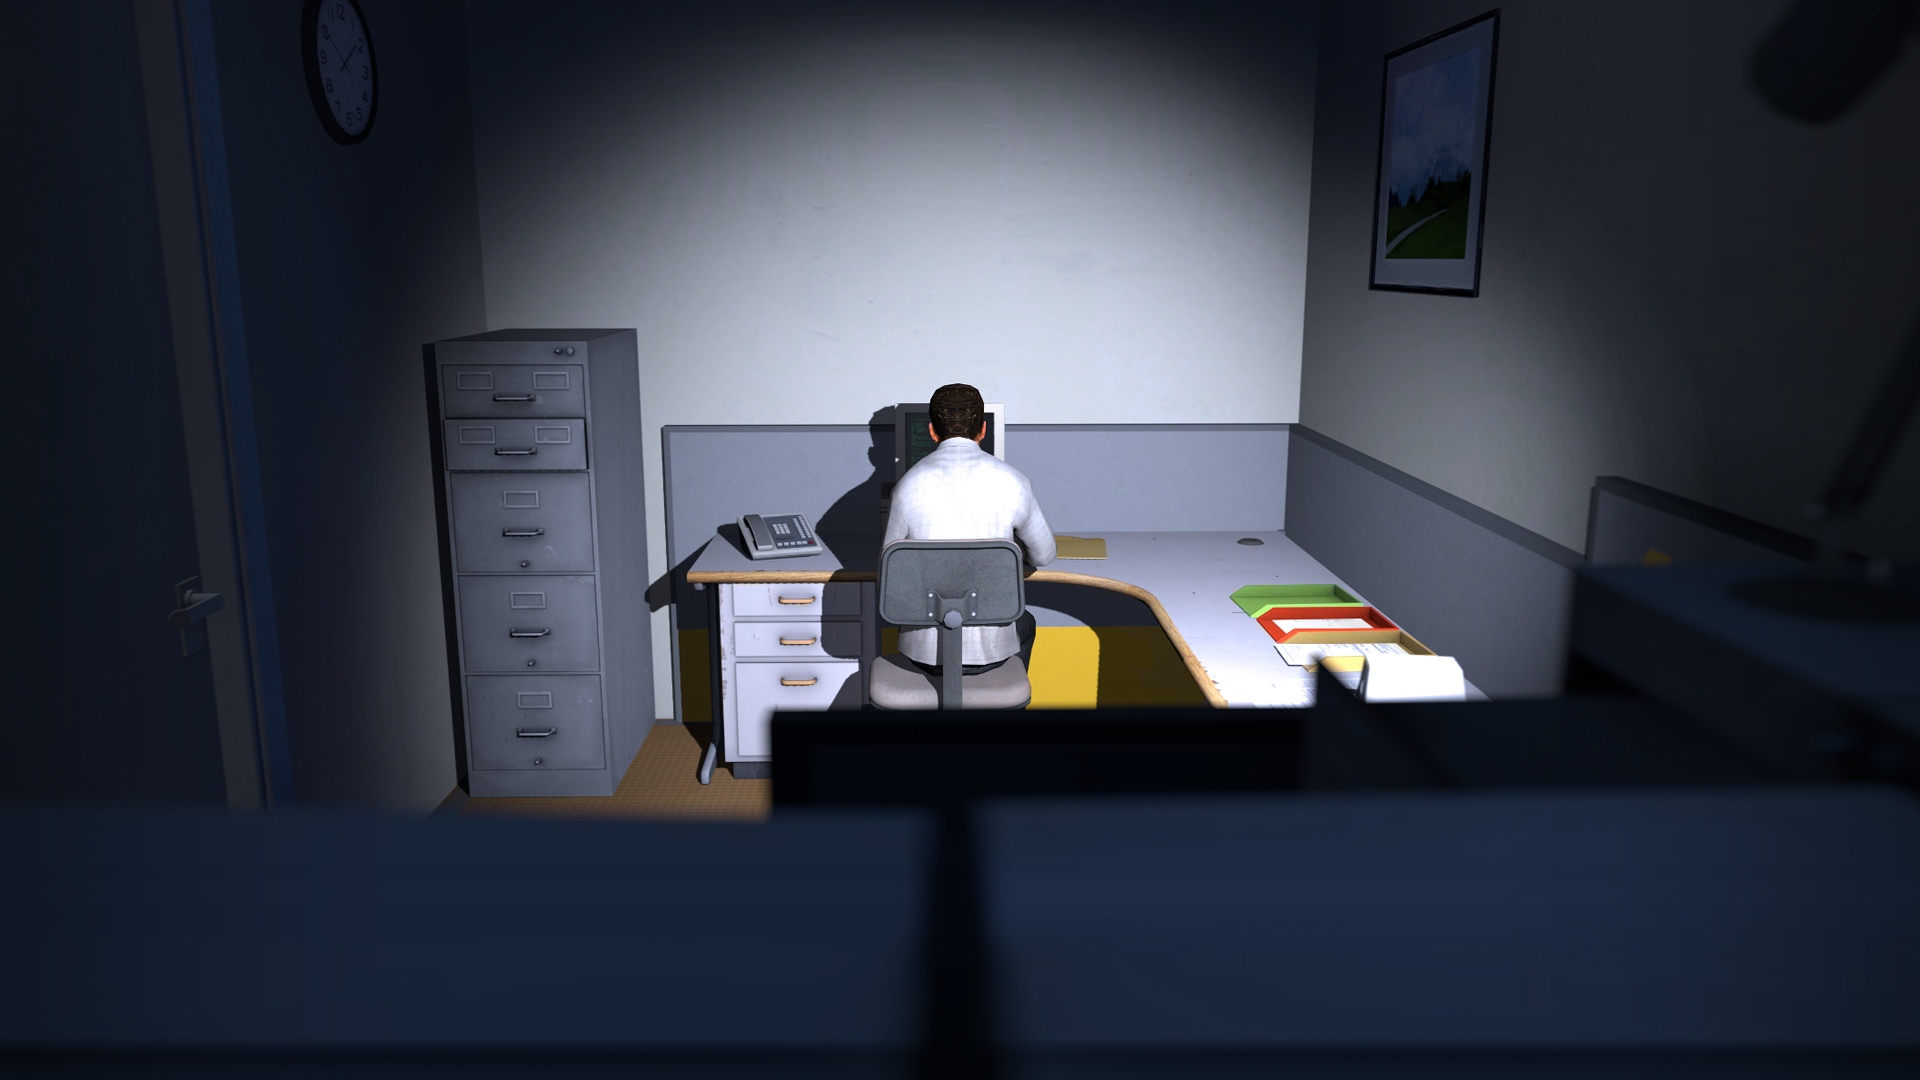 The Stanley Parable screenshot